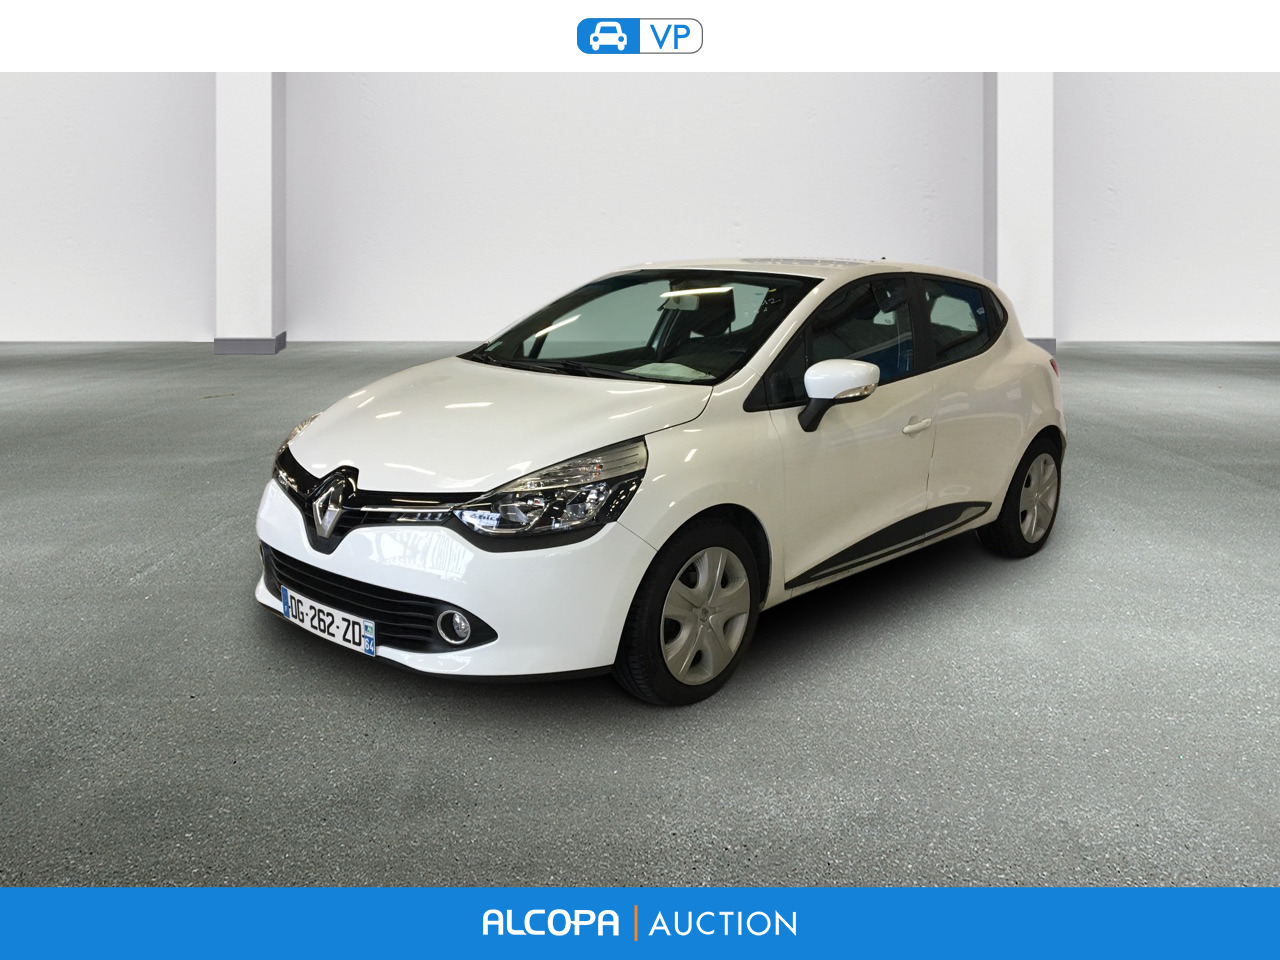 renault clio clio 1 5 dci 75 business eco 5p rennes alcopa auction. Black Bedroom Furniture Sets. Home Design Ideas